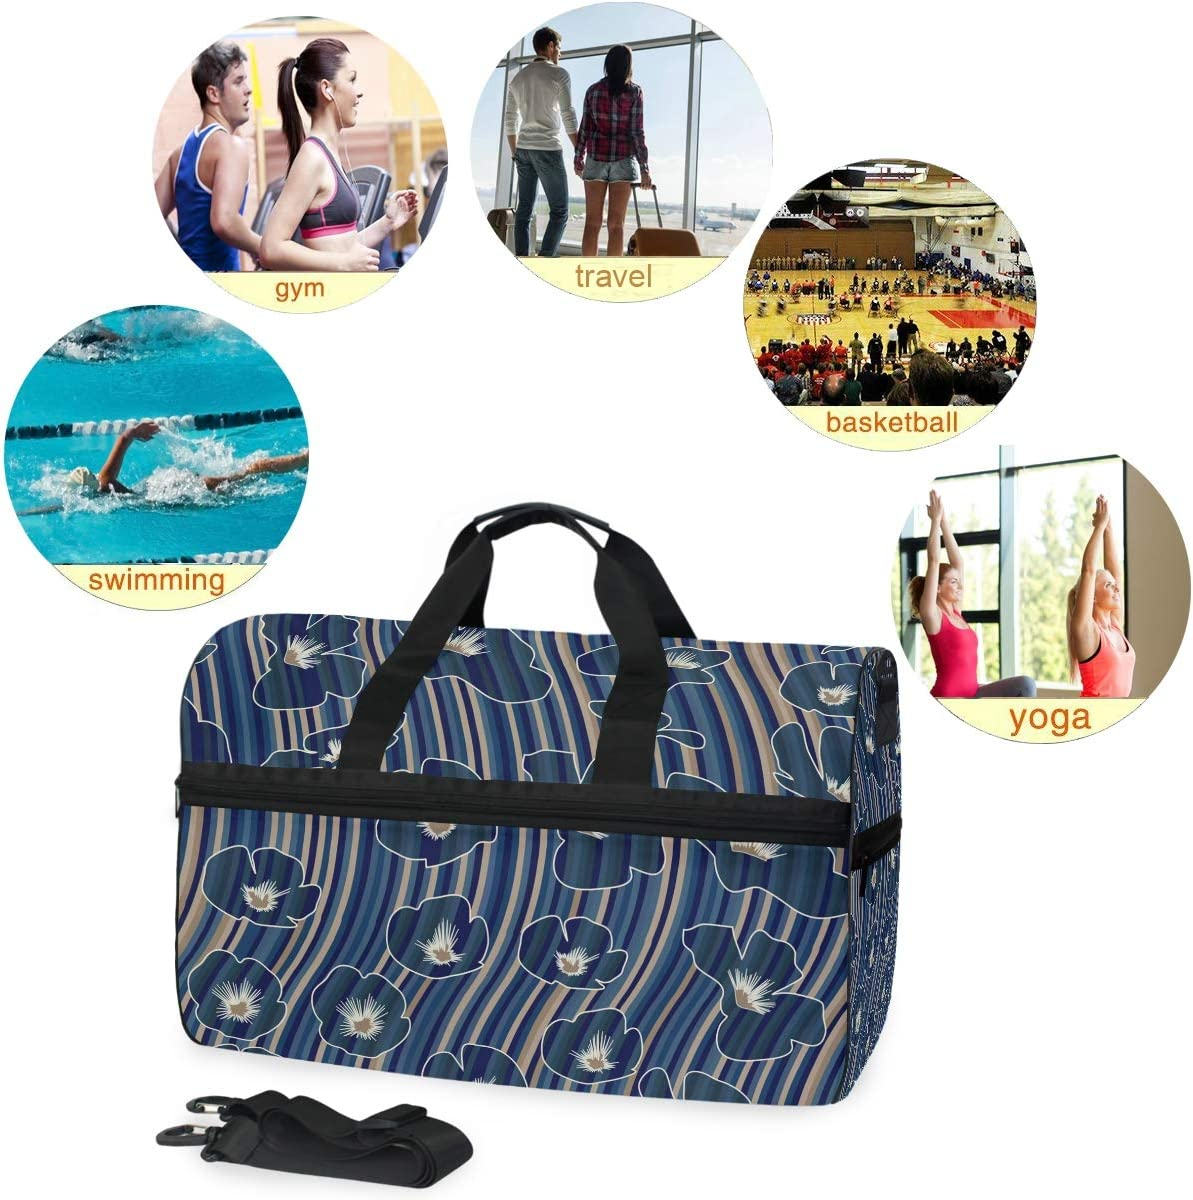 WIHVE Gym Bag Blue Poppy Striped Sports Travel Duffel Bag with Shoes Compartment